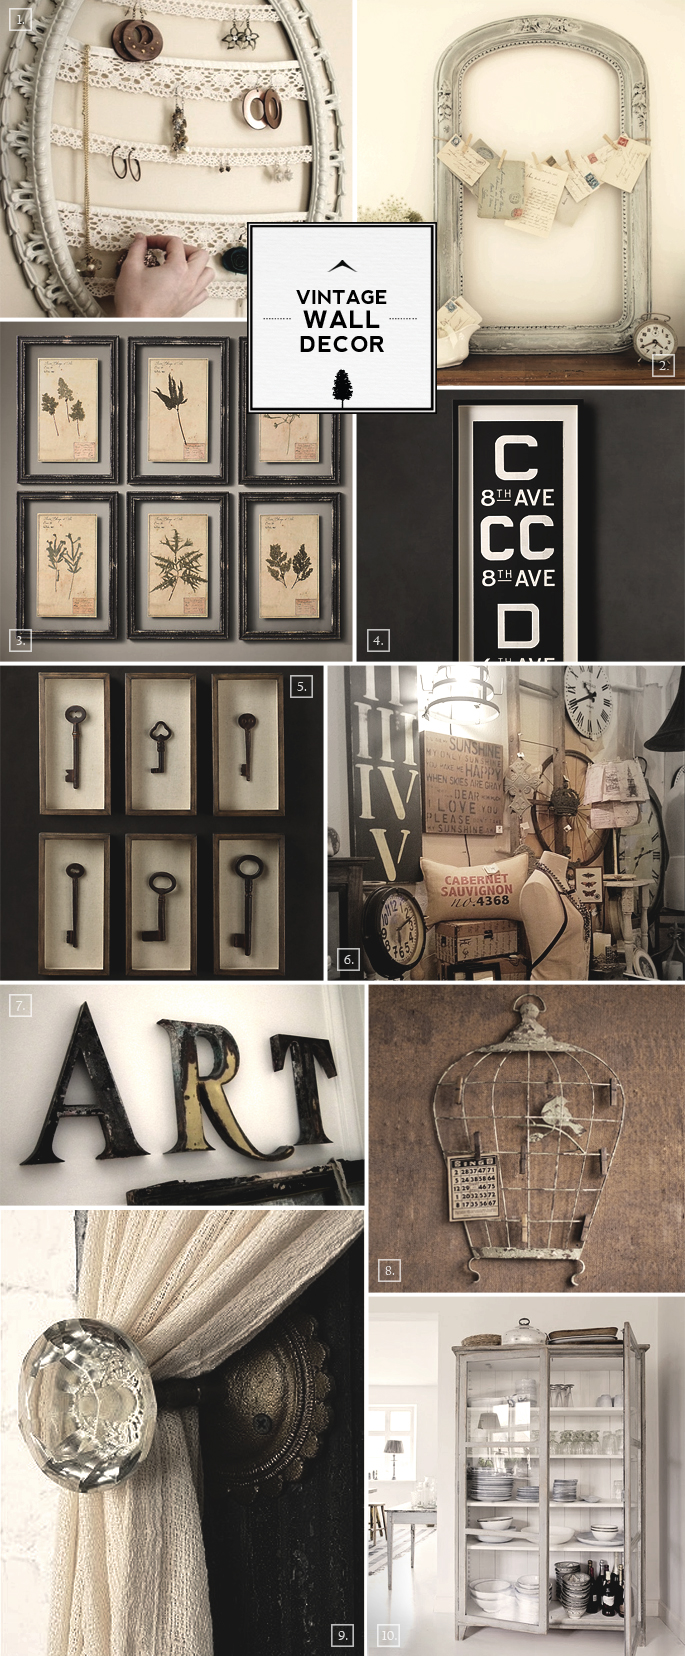 Vintage Wall Decoration Ideas : Vintage wall decor ideas from bird cages to designing